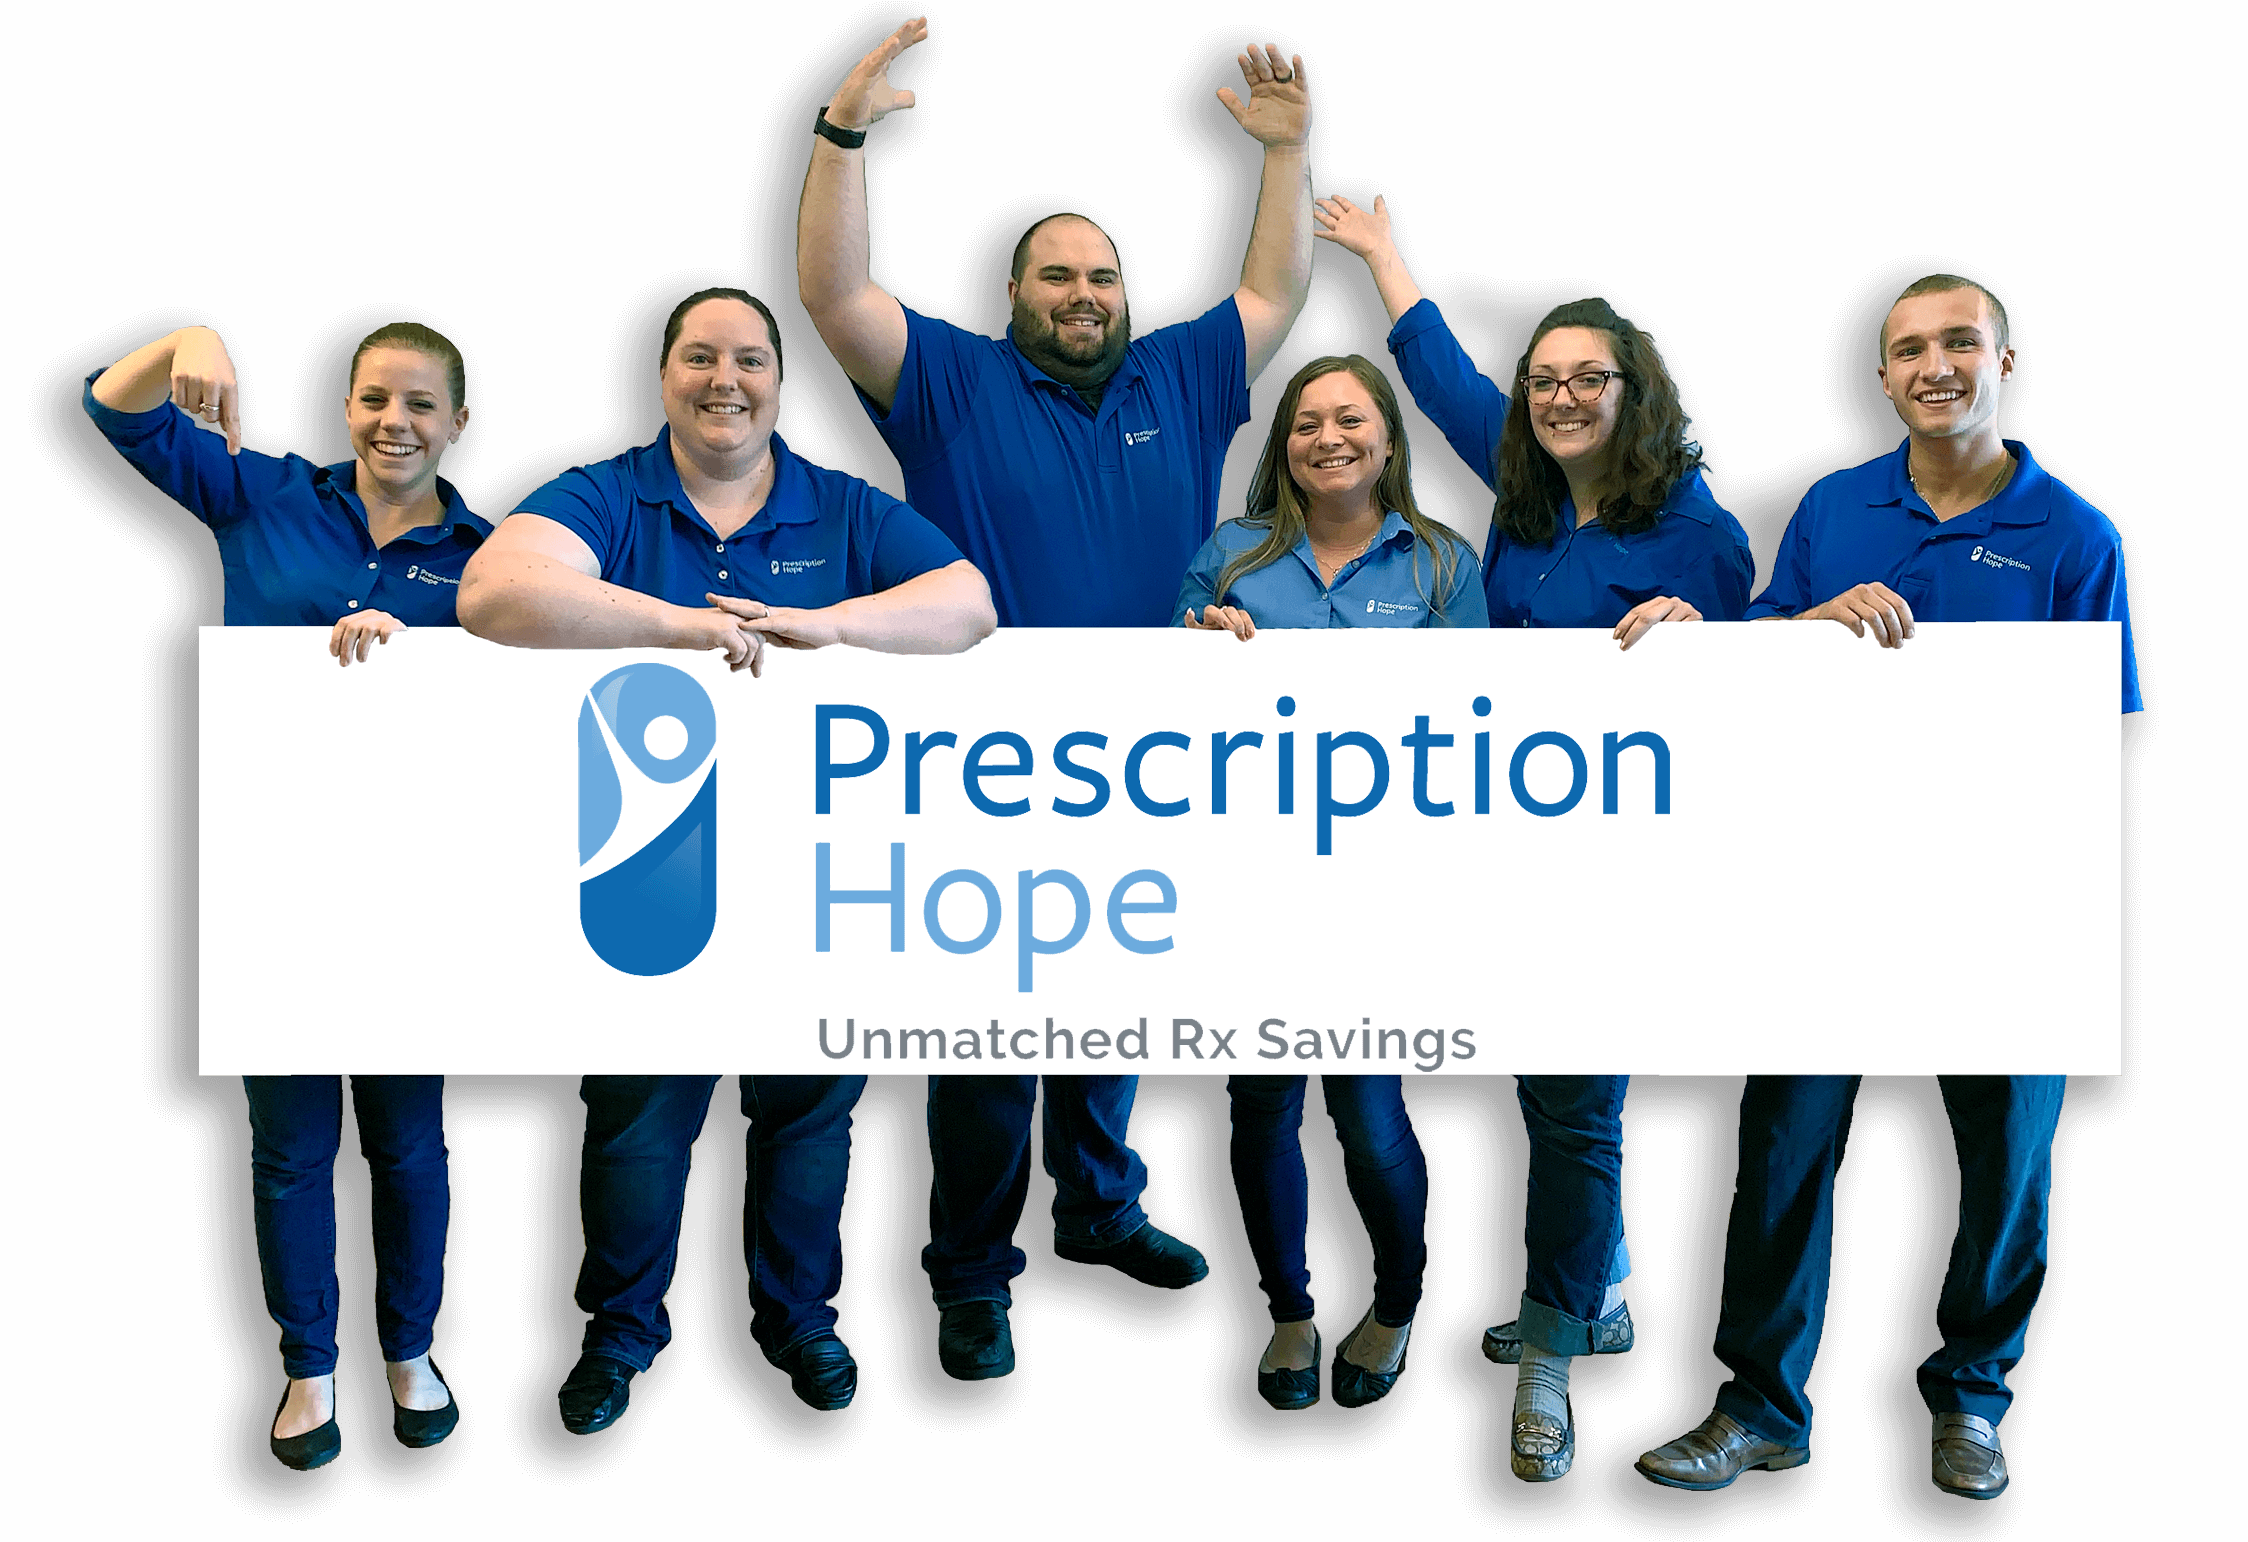 prescription hope